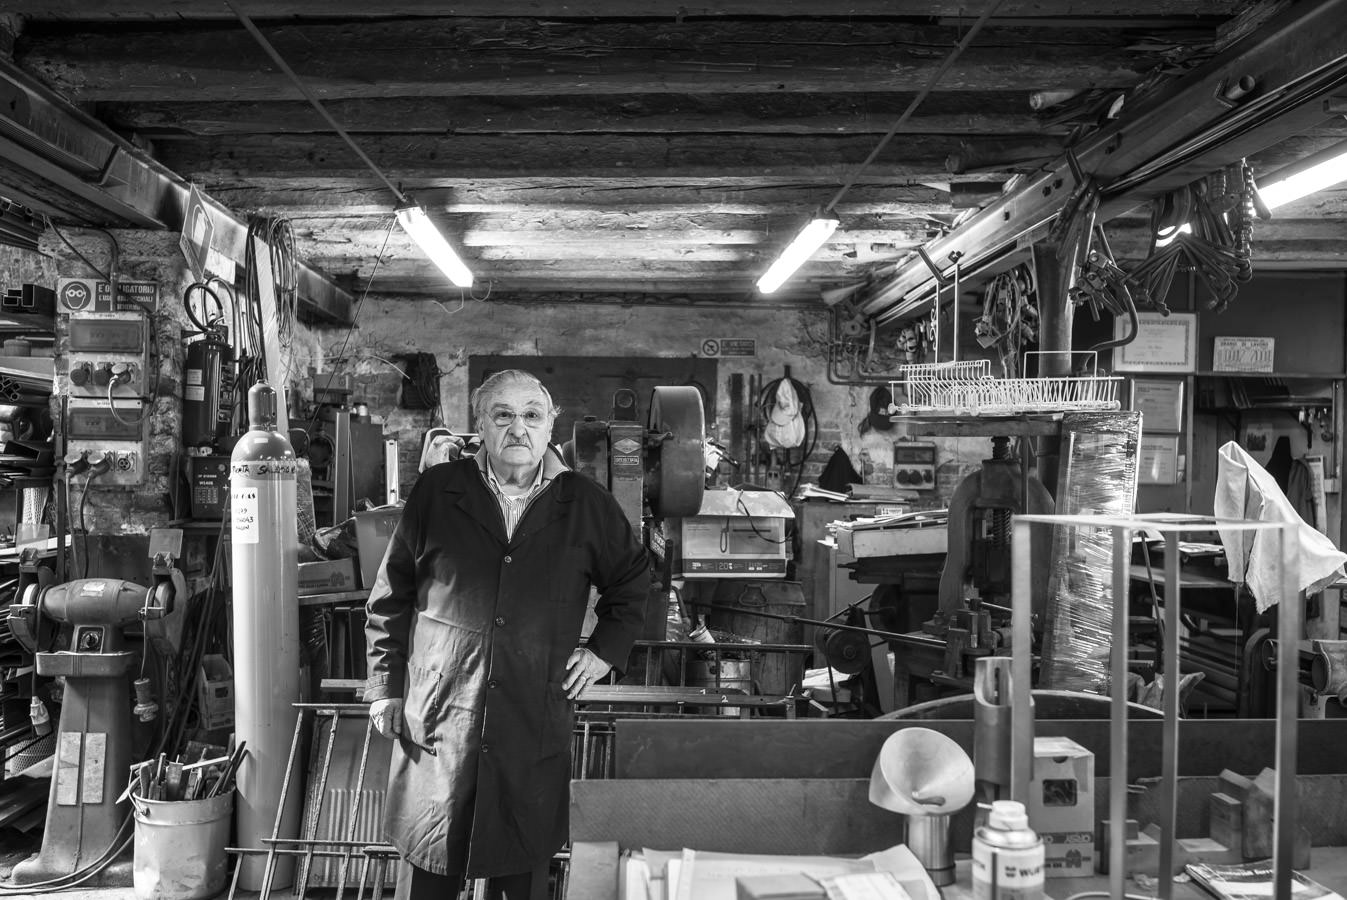 Blacksmith-Paolo-Zanon-in-his-workshop